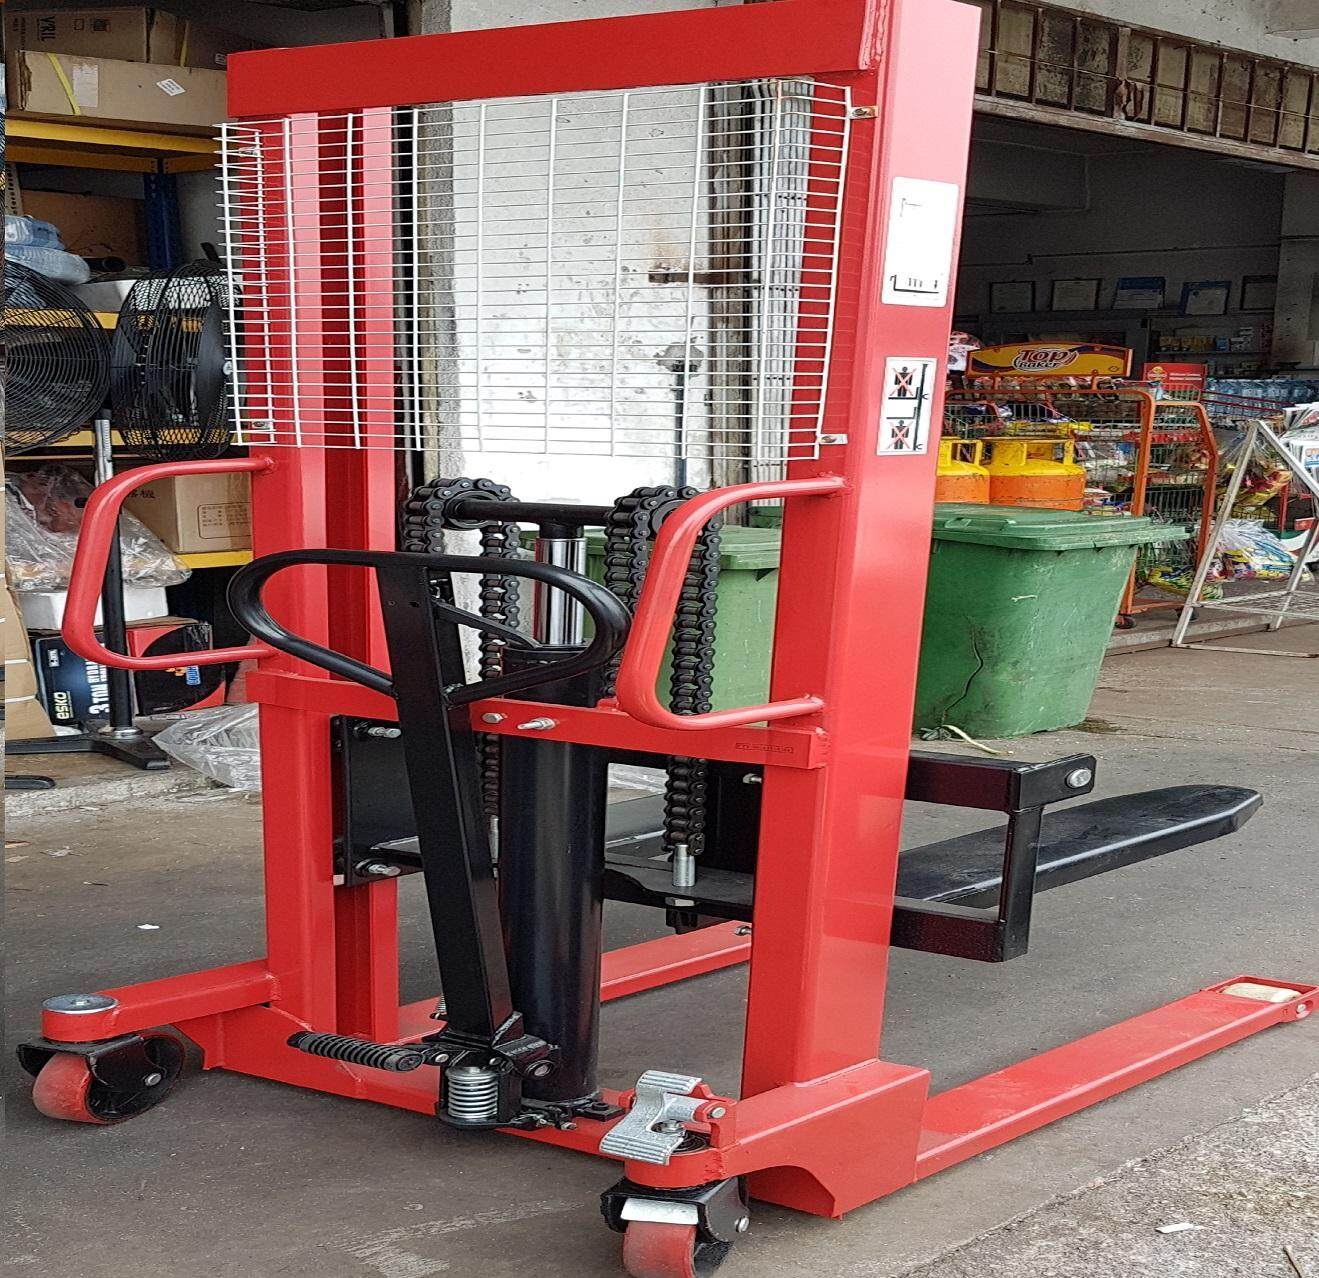 1.5 ton stacker heavy kg lift lifting pallet truck track side slide down up top fork pump jack trolley table hydraulic oil handle holder holding hold hand adjustable manual wheel roller roll rolling chain hoist long high height load length